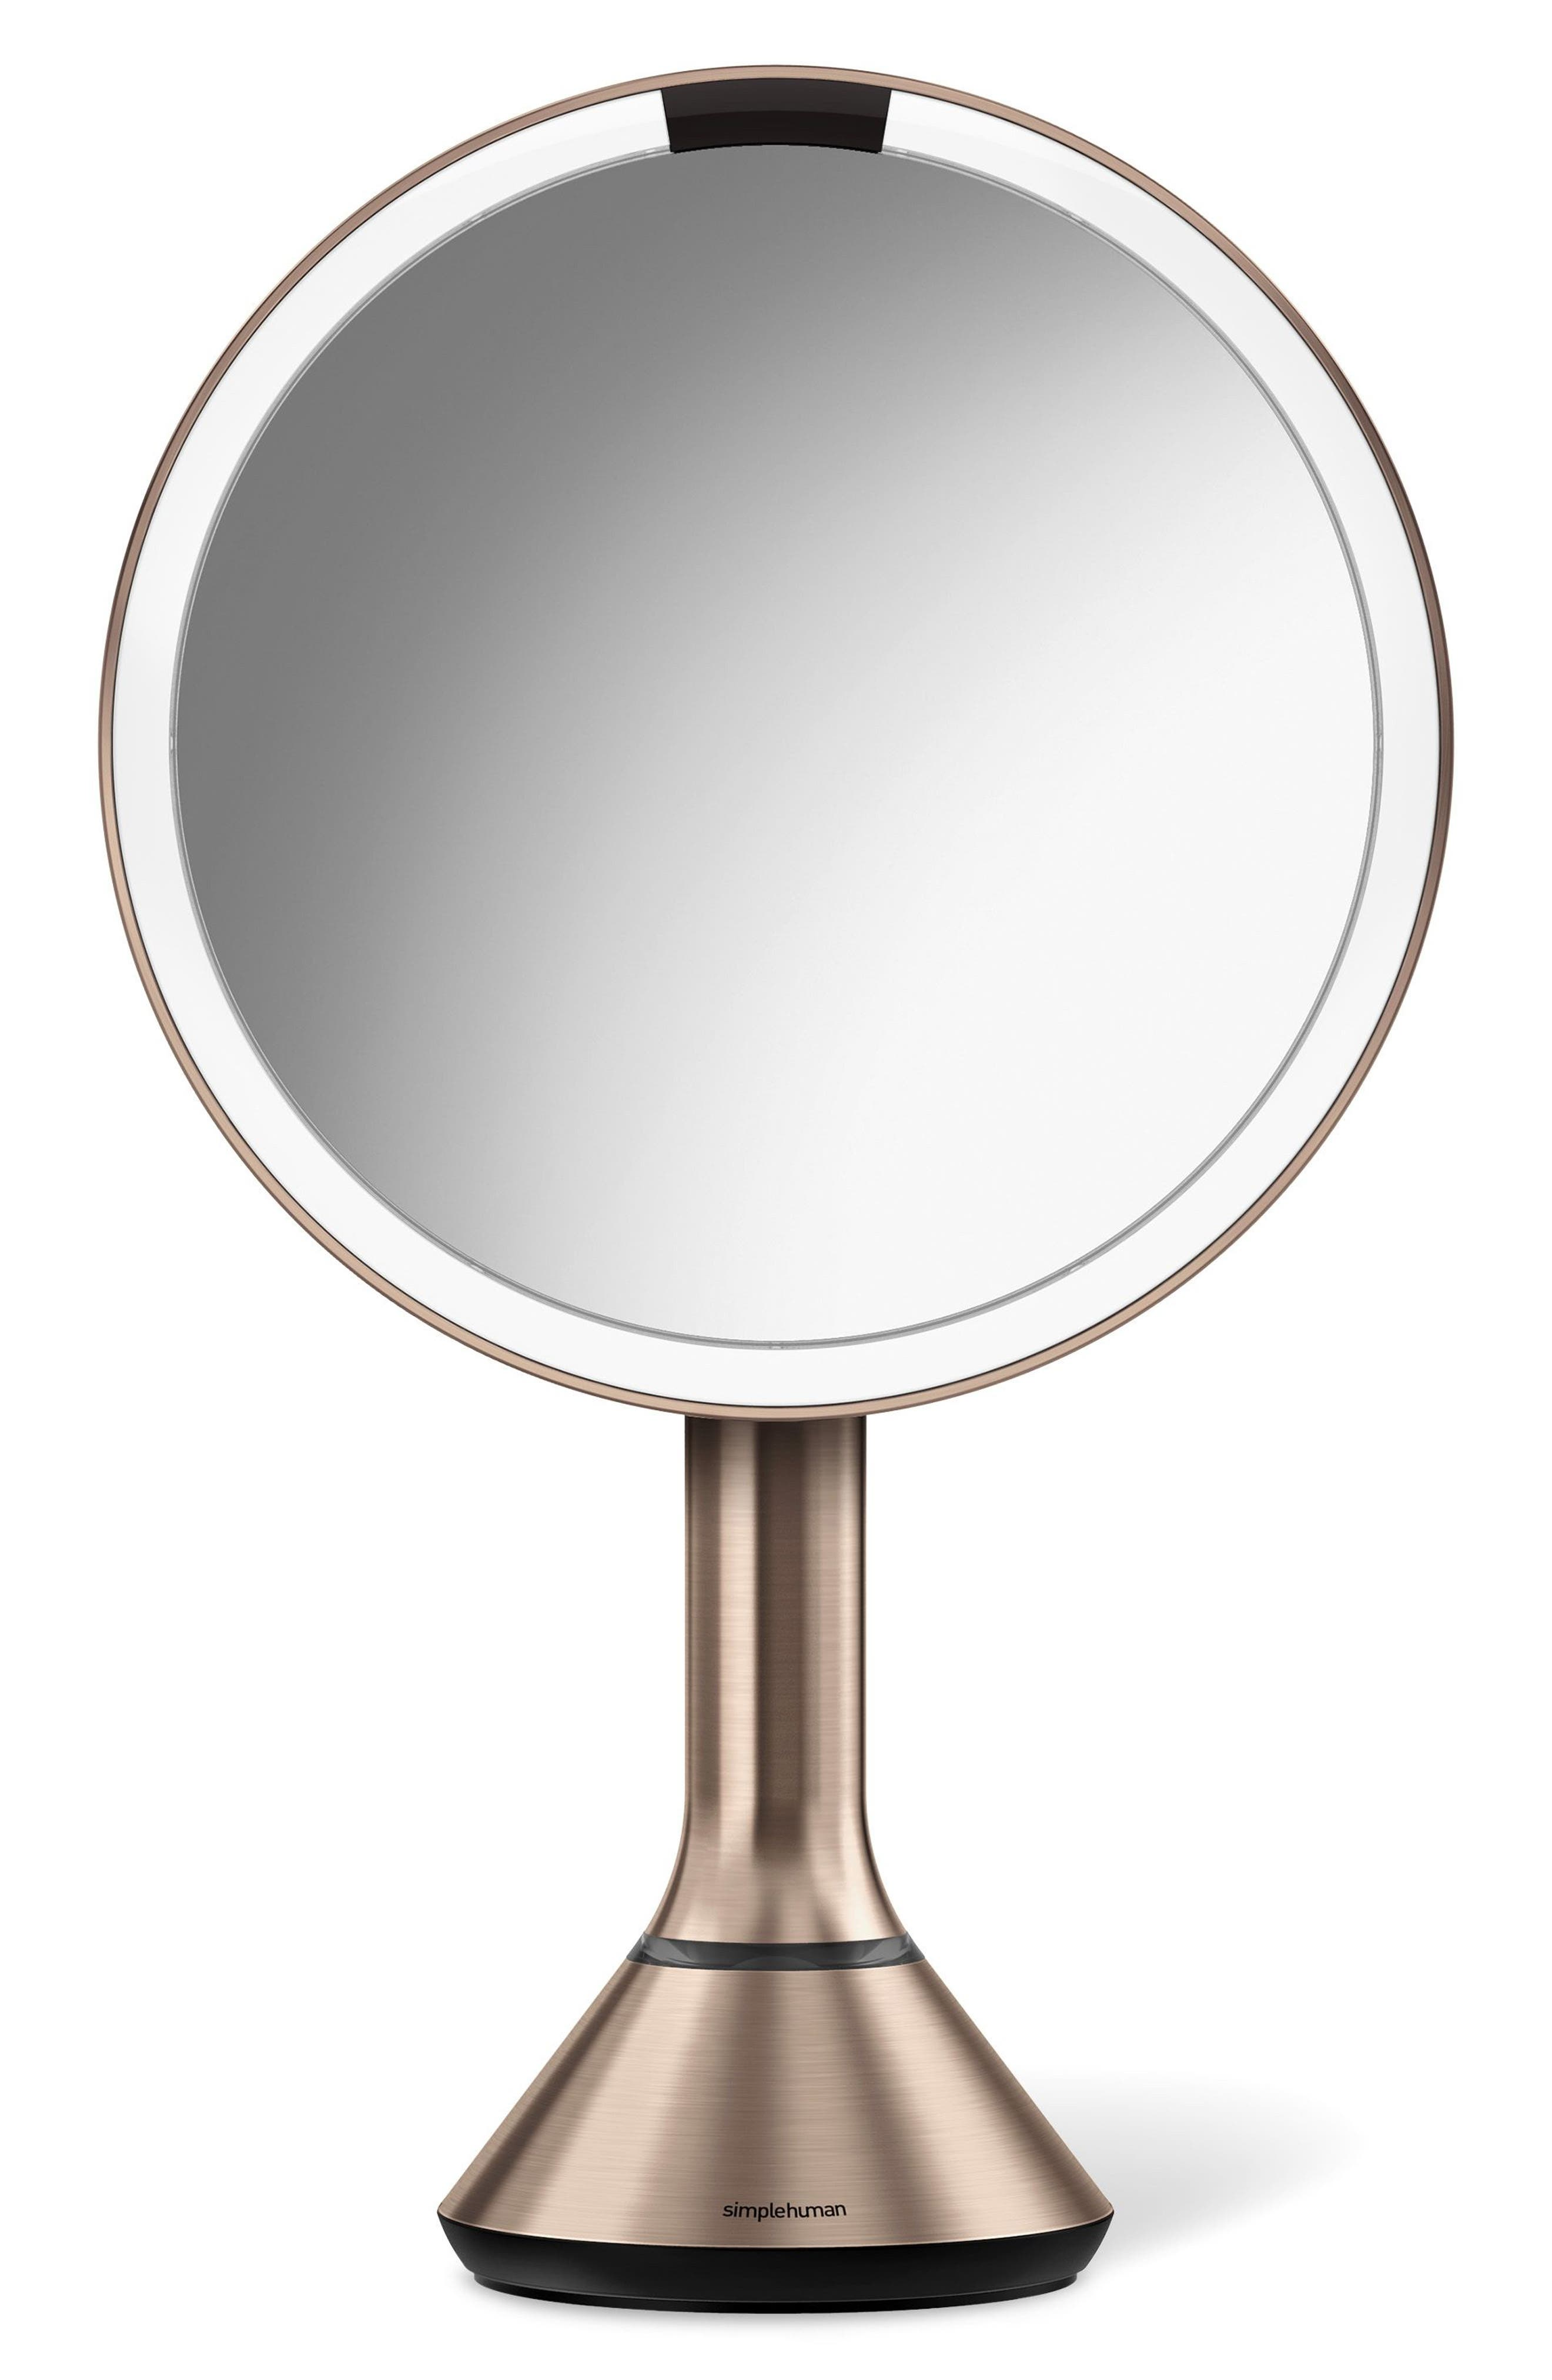 Eight Inch Sensor Mirror with Brightness Control,                             Main thumbnail 1, color,                             Rose Gold